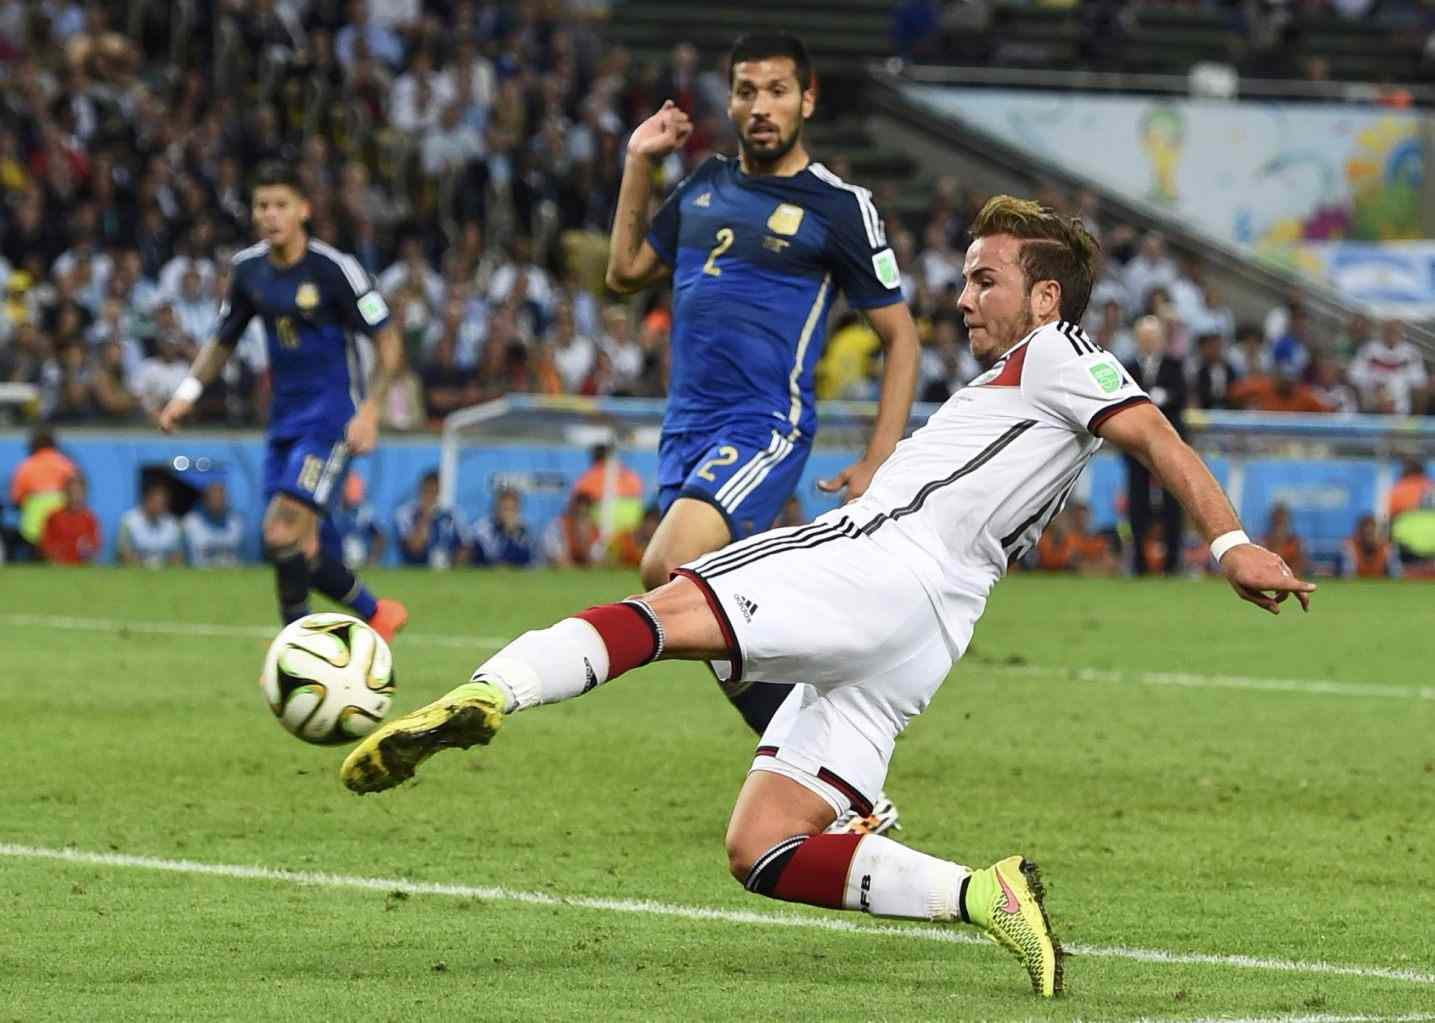 One billion watched 2014 FIFA World Cup final on TV